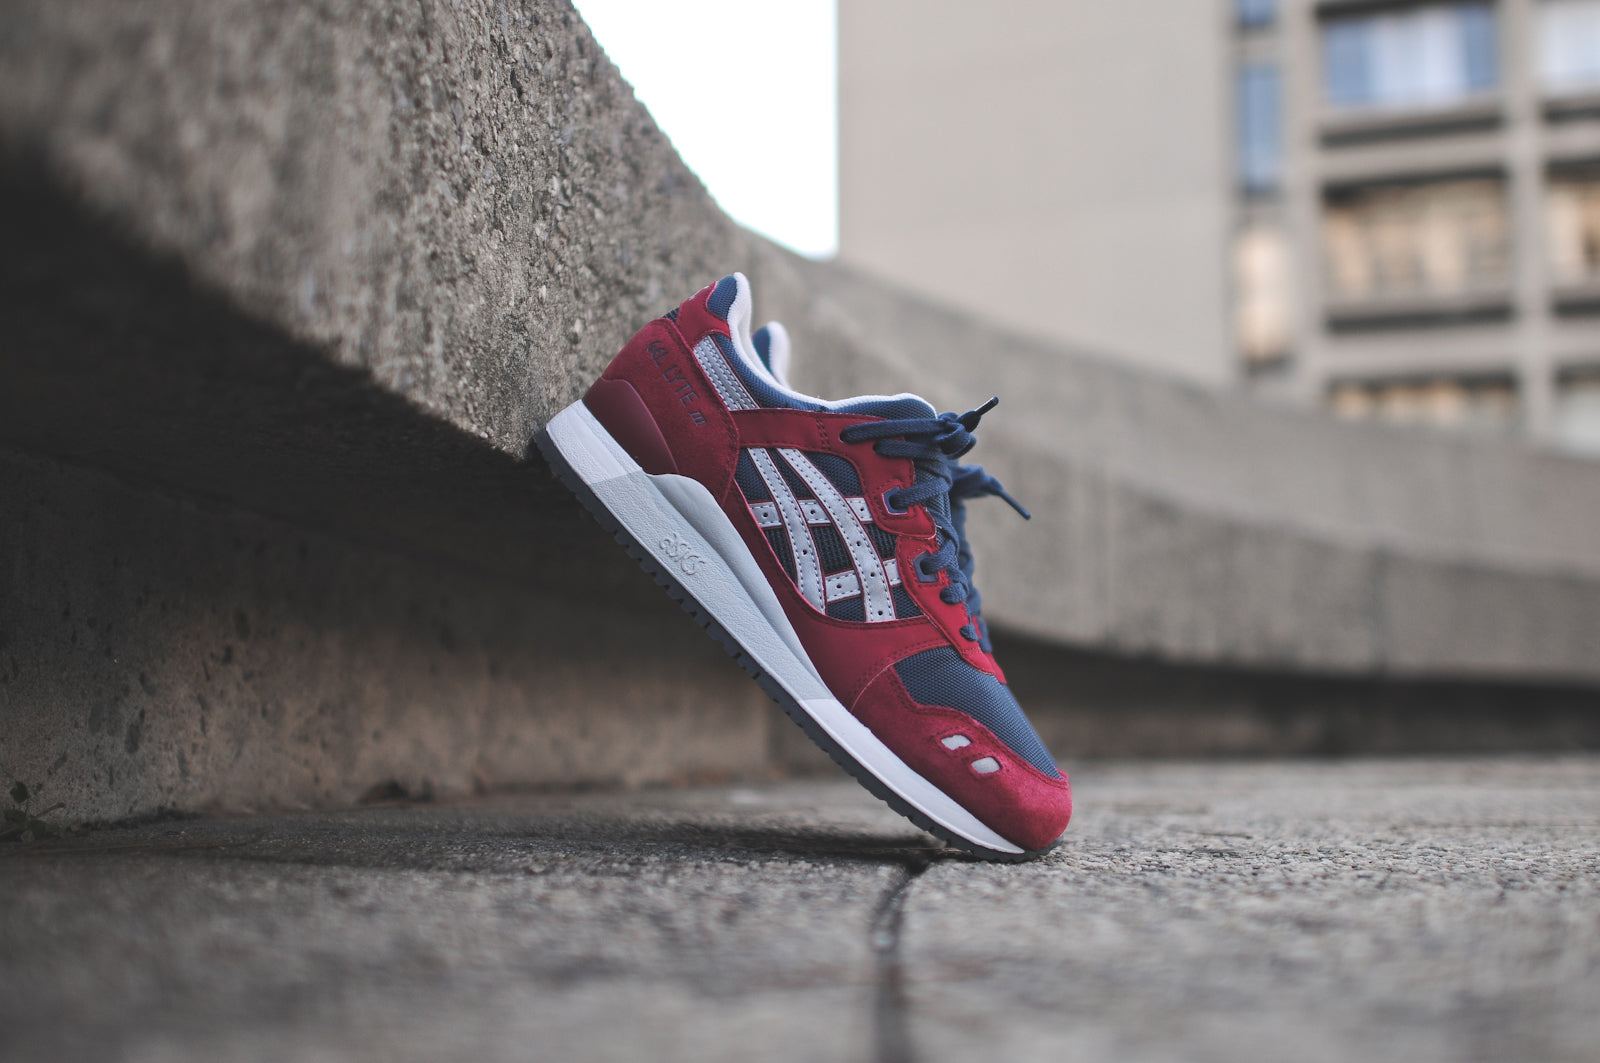 lowest price bea7a 2d49b ASICS GEL LYTE III - BURGUNDY / NAVY & GEL SAGA - BLACK ...